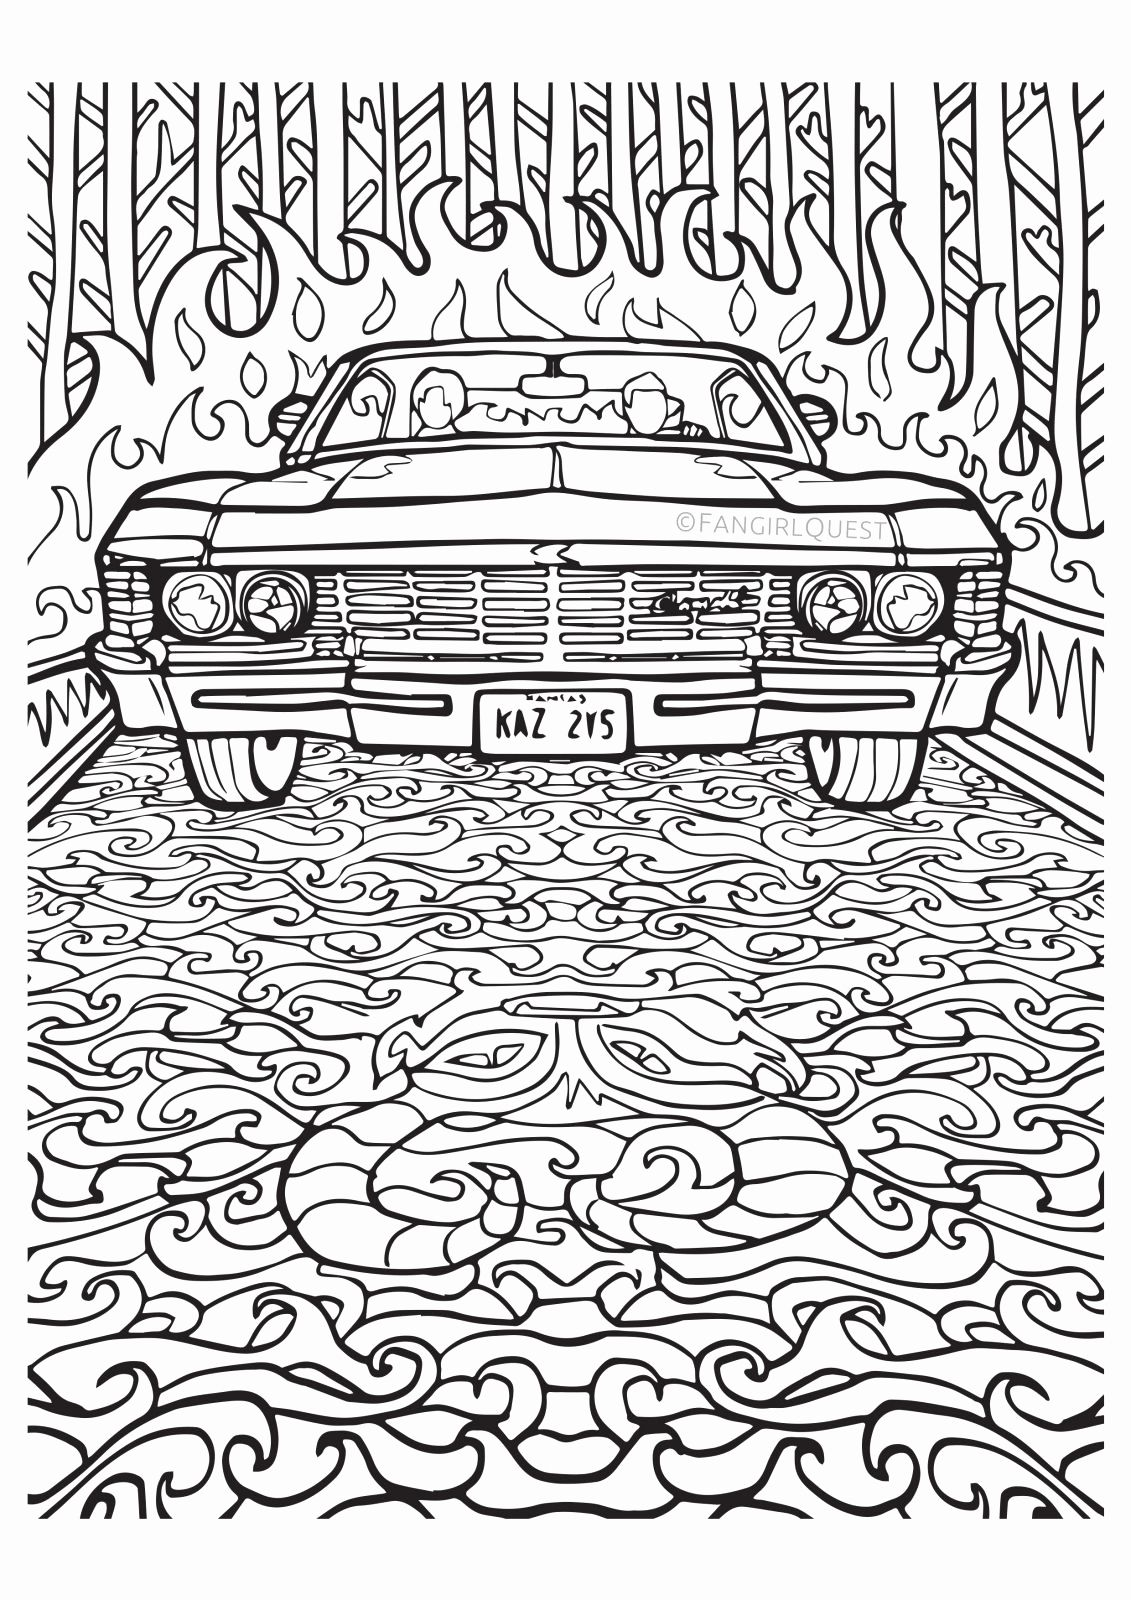 Supernatural Coloring Pages American Coloring Pages Cool Coloring Pages Cars Coloring Pages Love Coloring Pages